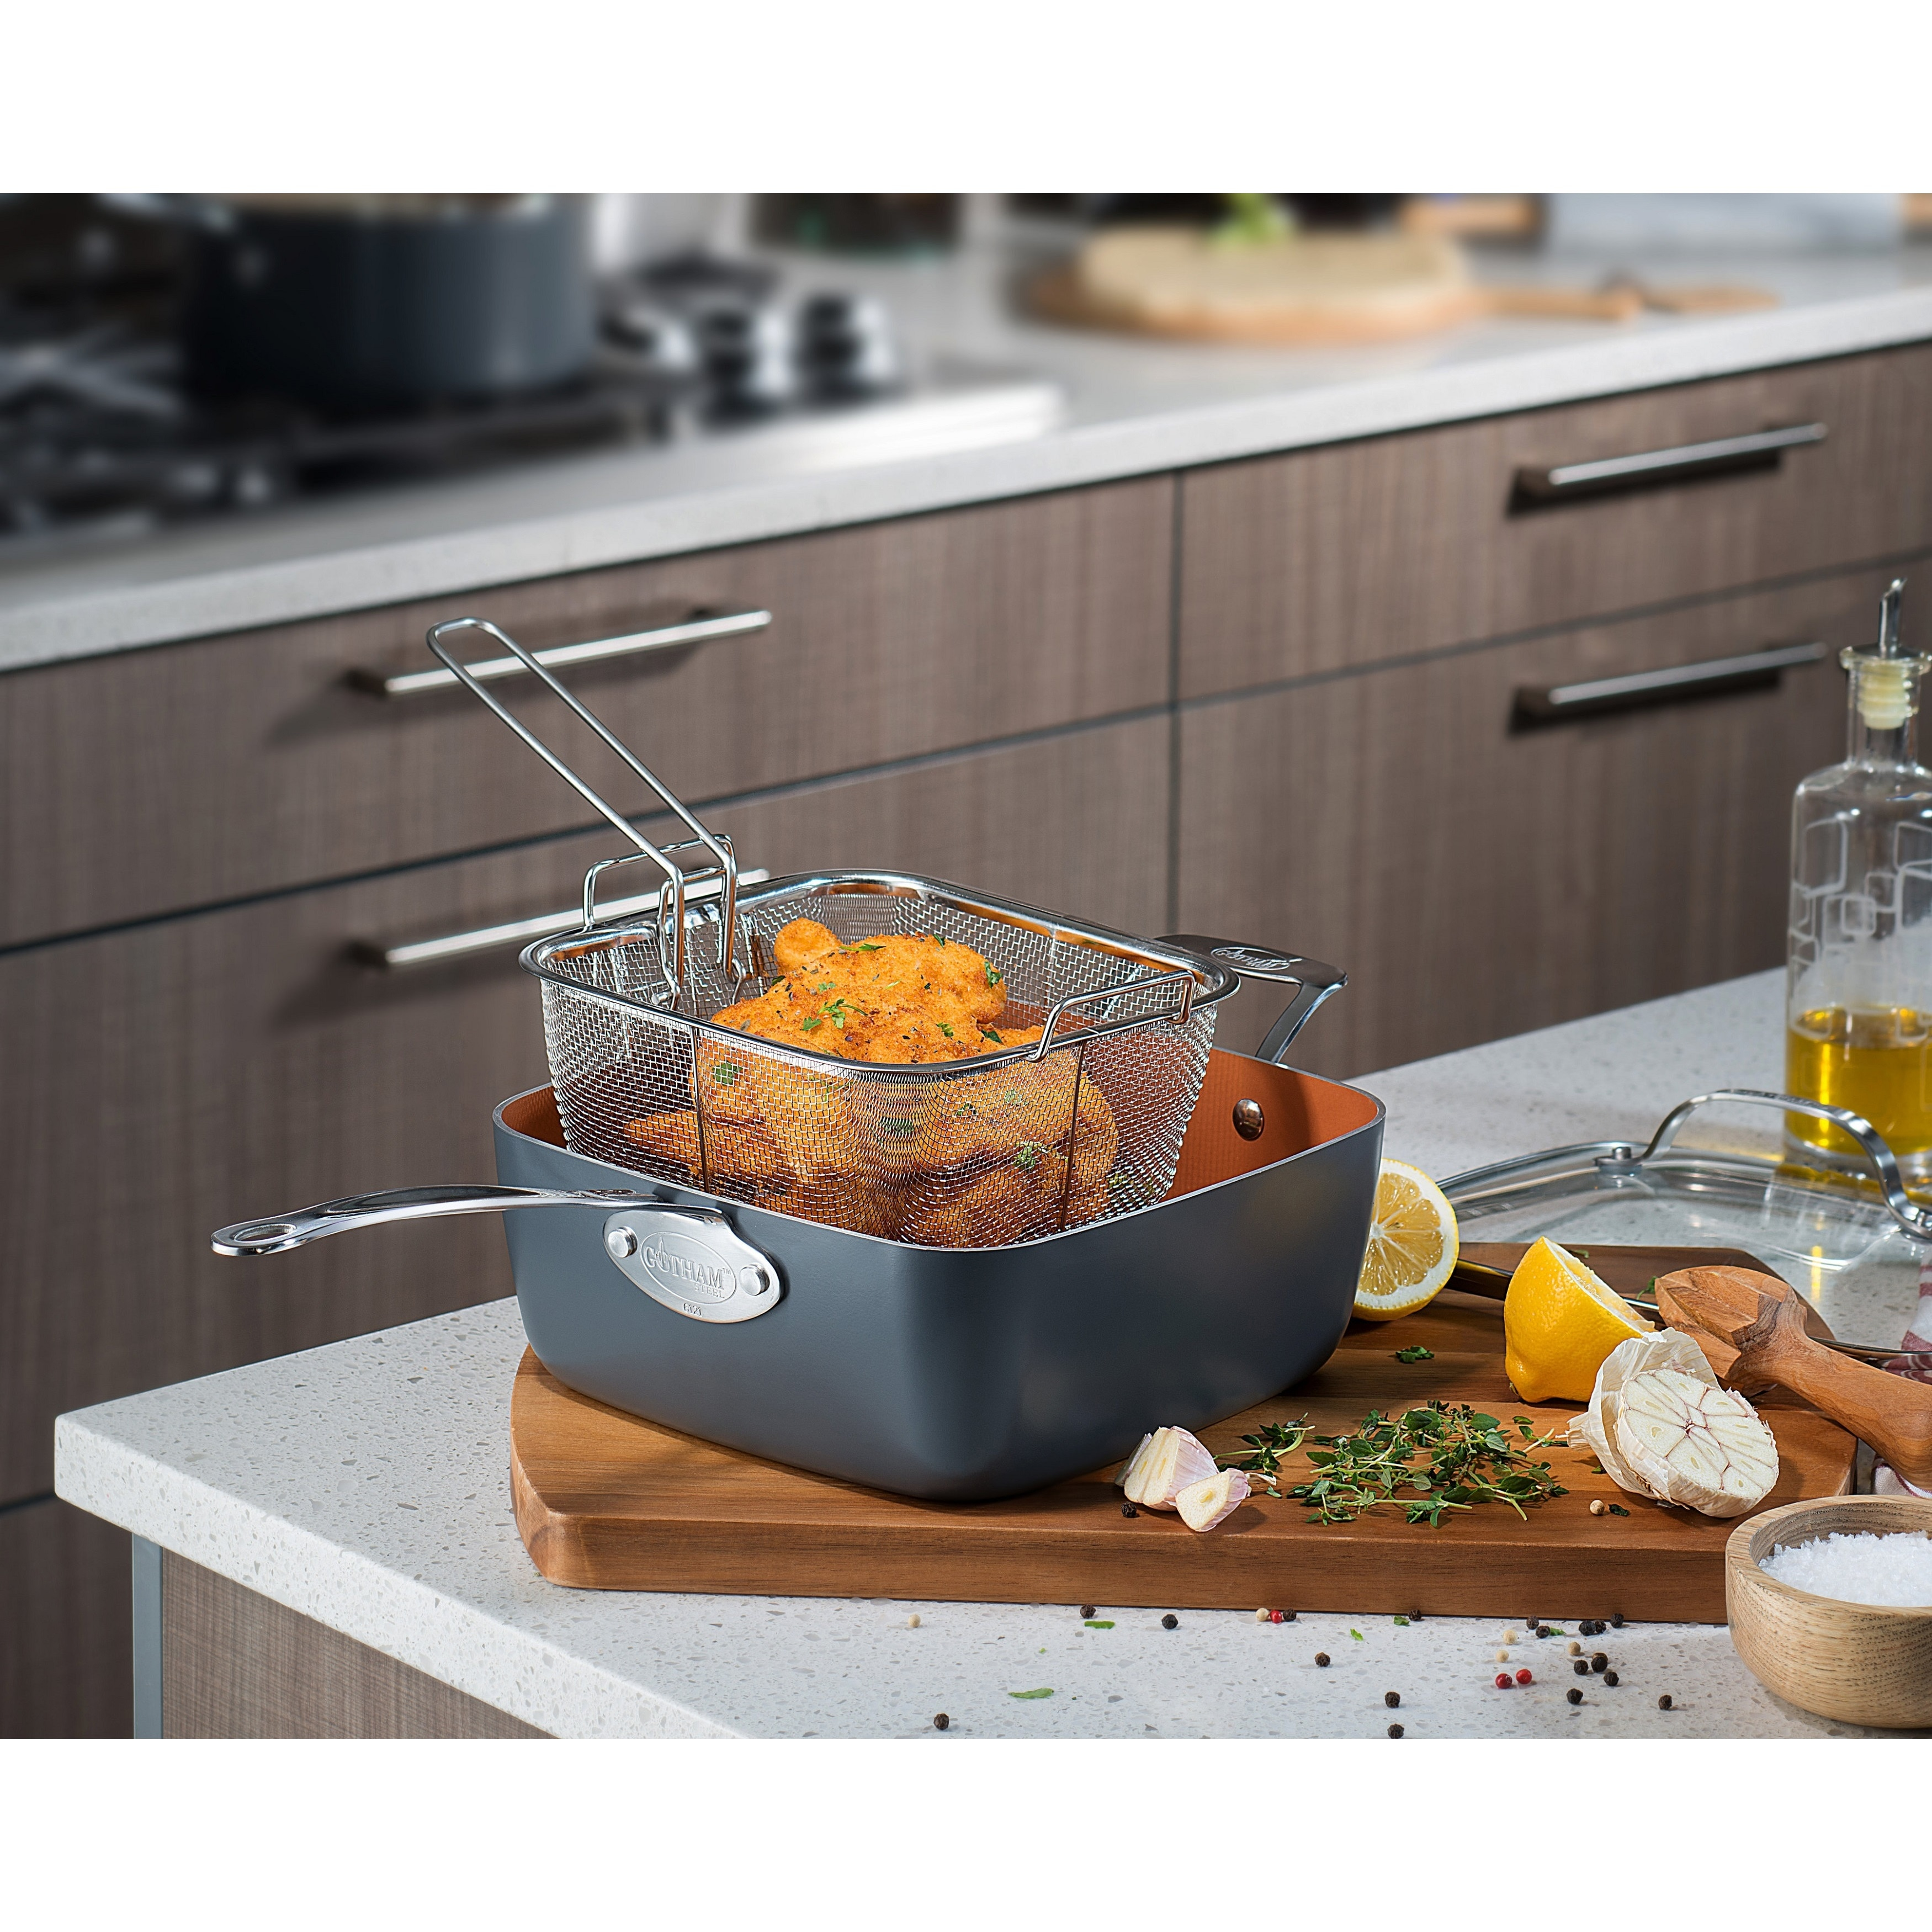 Gotham Steel Ultimate 15-Piece All-in-One Copper Cookware Set (Non-Stick  Ti-Cerama Coating) - Free Shipping Today - Overstock.com - 23351141